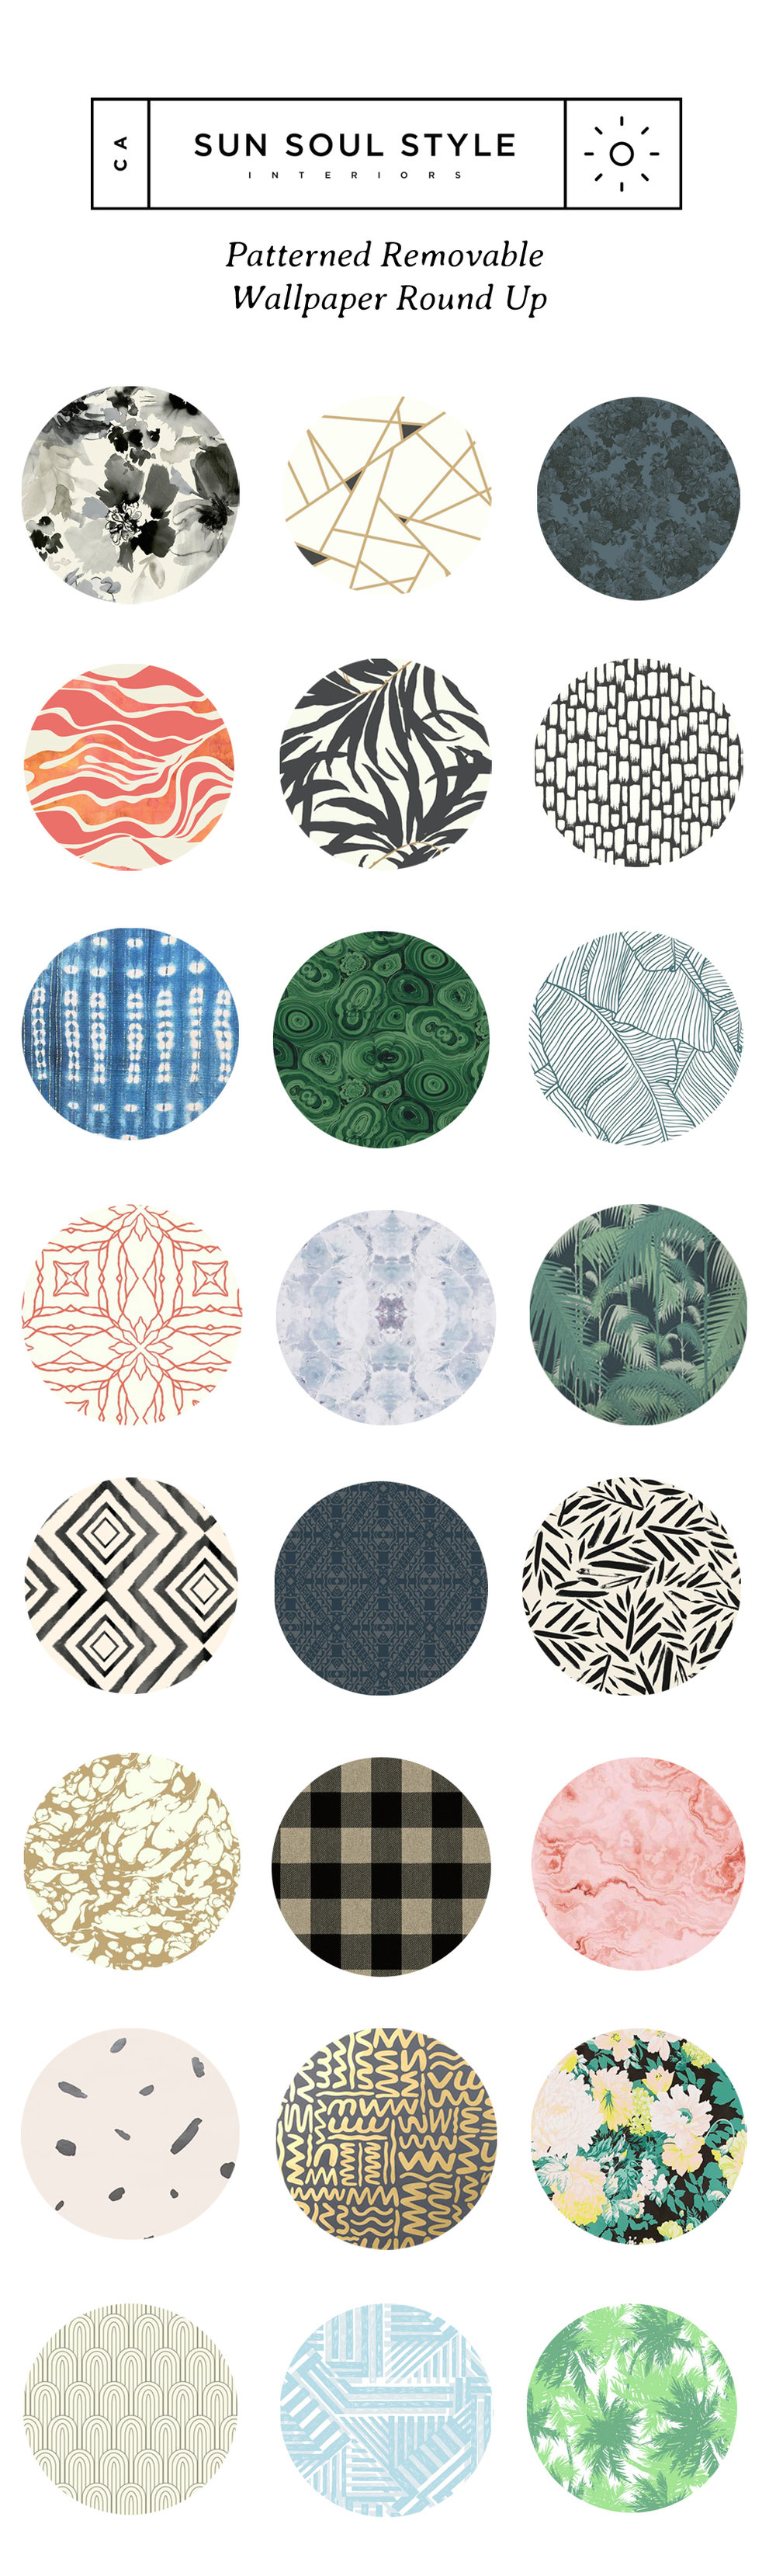 Patterned Removable Wallpaper Round Up Via Sun Soul Style